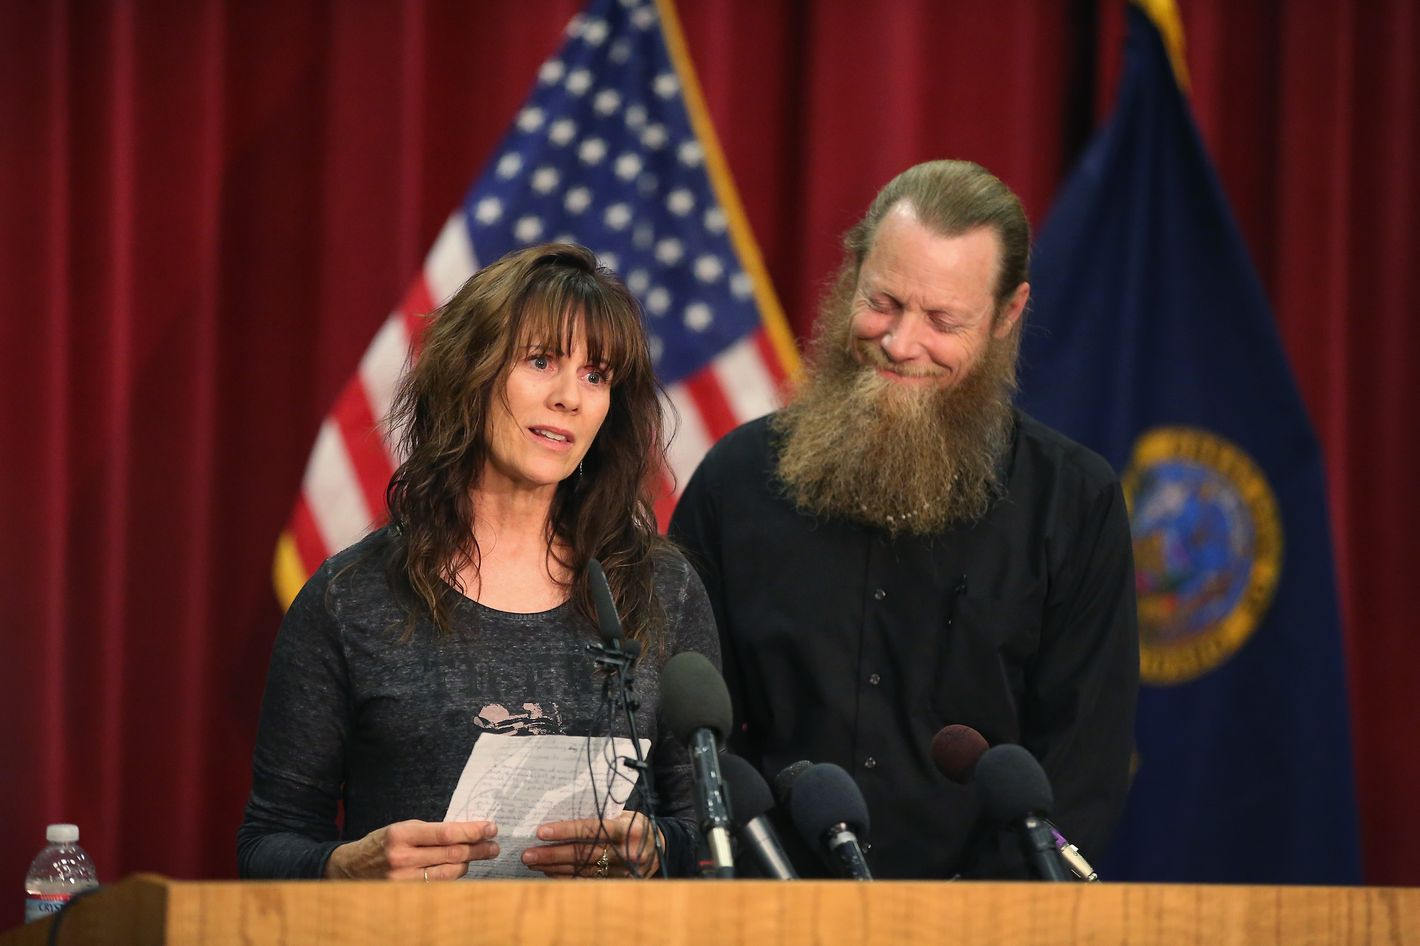 BOISE, ID - JUNE 01:  Bob Bergdahl listens as his wife Jani reads a message to their son Sgt. Bowe Bergdahl during a press conference at Gouen Field national guard training facility on June 1, 2014 in Boise, Idaho. Sgt. Bergdahl who was captured in 2009 while serving with U.S. Army's 501st Parachute Infantry Regiment in Paktika Province, Afghanistan was released yesterday after a swap for Taliban prisoners. Bergdahl was considered the only U.S. prisoner of war held in Afghanistan.  (Photo by Scott Olson/Getty Images)